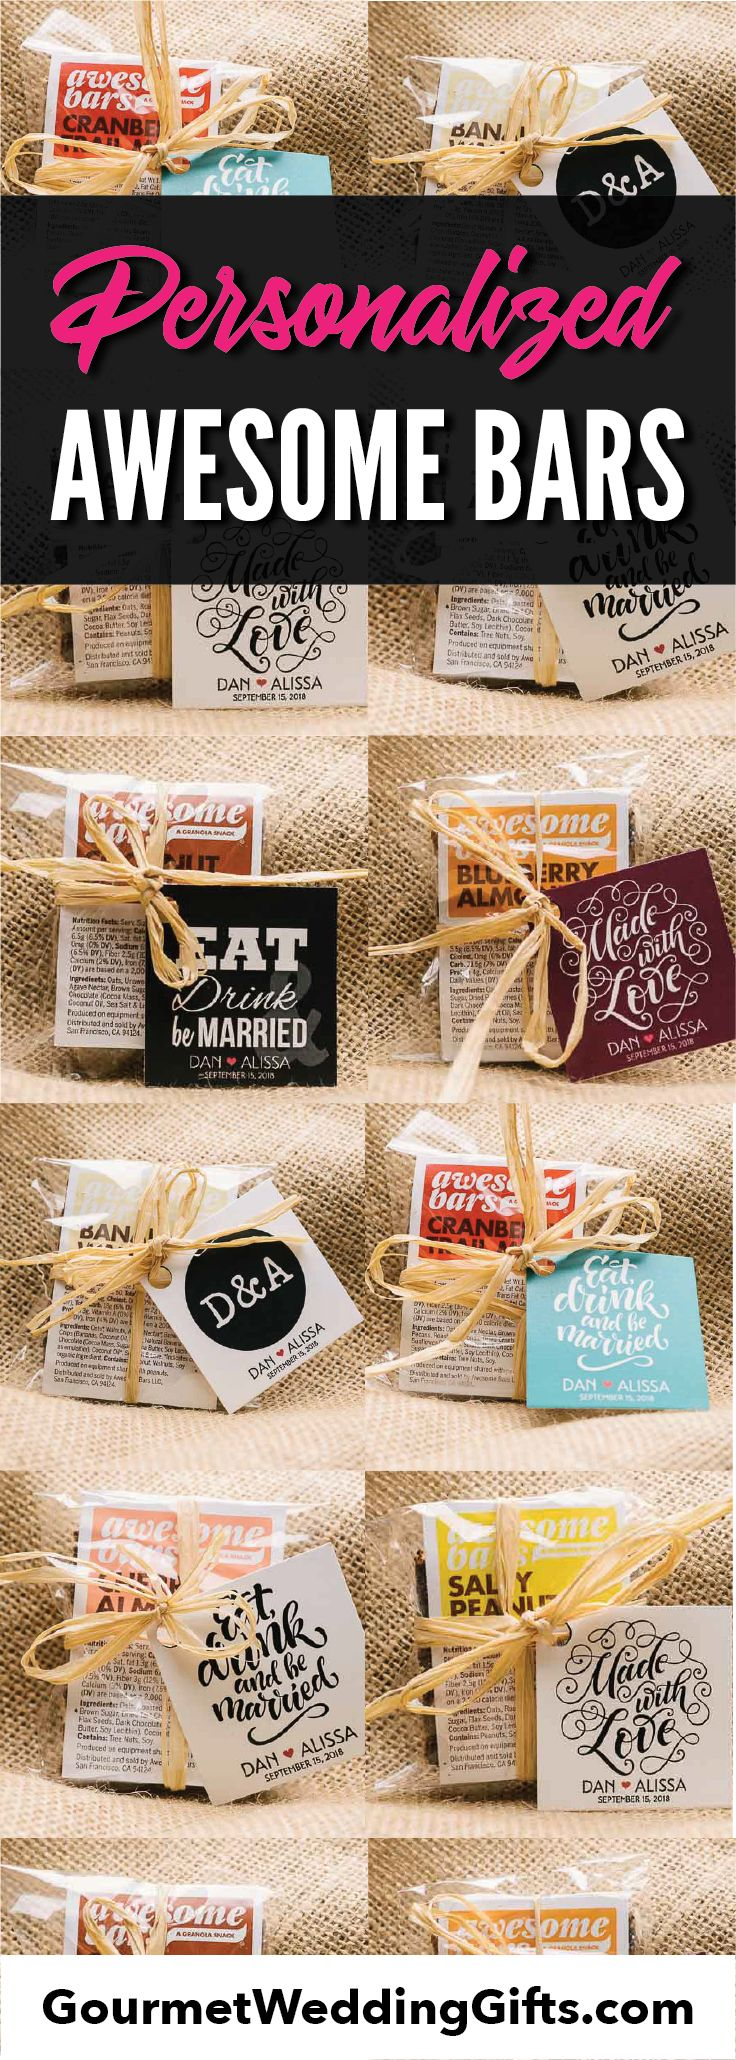 unique edible wedding favors | wedding ideas | personalized inexpensive cheap wedding gifts for guests | bridal shower gifts | wedding gift bags | custom gifts